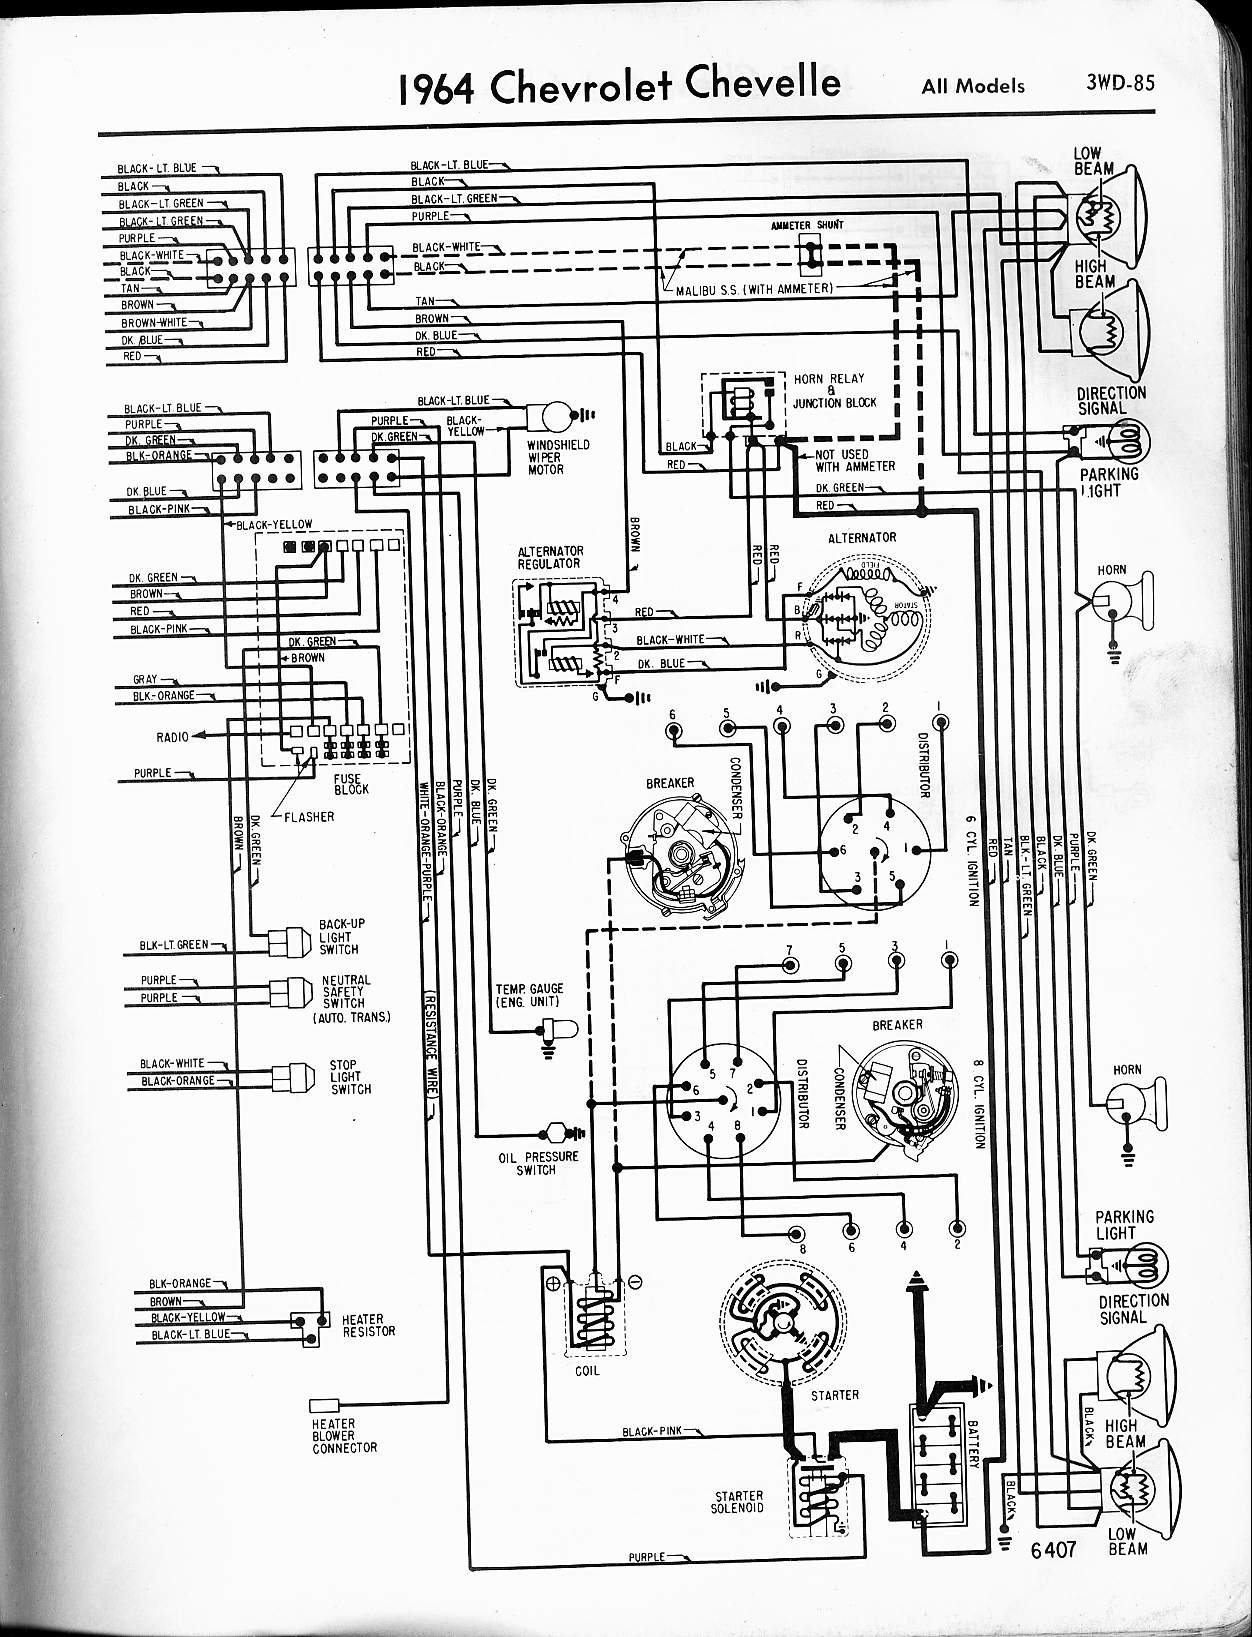 [SCHEMATICS_44OR]  82FF68F 66 Gto Wiper Motor Wiring Diagram | Wiring Resources | Delco Radio Wiring Diagram 1968 Chevelle |  | Wiring Resources